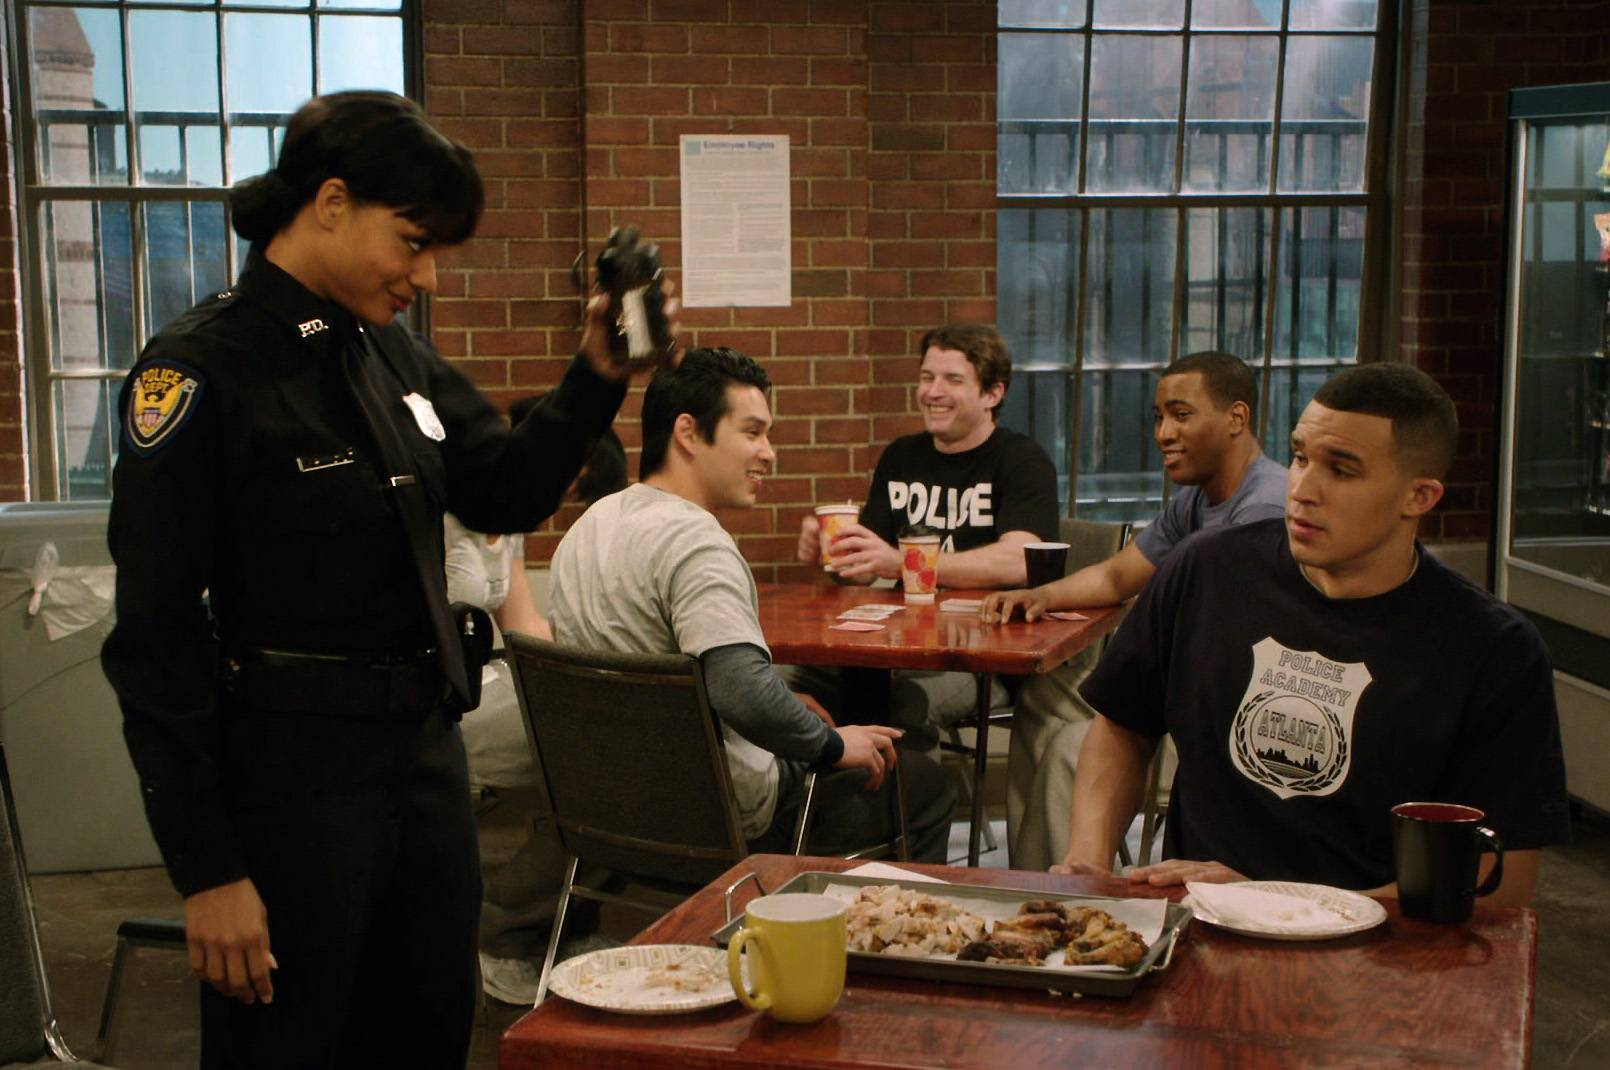 She Ain't Done Yet - Just to make sure that her fellow police officers understand just how crazy she is, Kita pulls a prank on them and scares them silly.Want to see more crazy antics? Tune in Tuesdays at 10:30/9:30C for all-new episodes of Let's Stay Together.(Photo: BET)